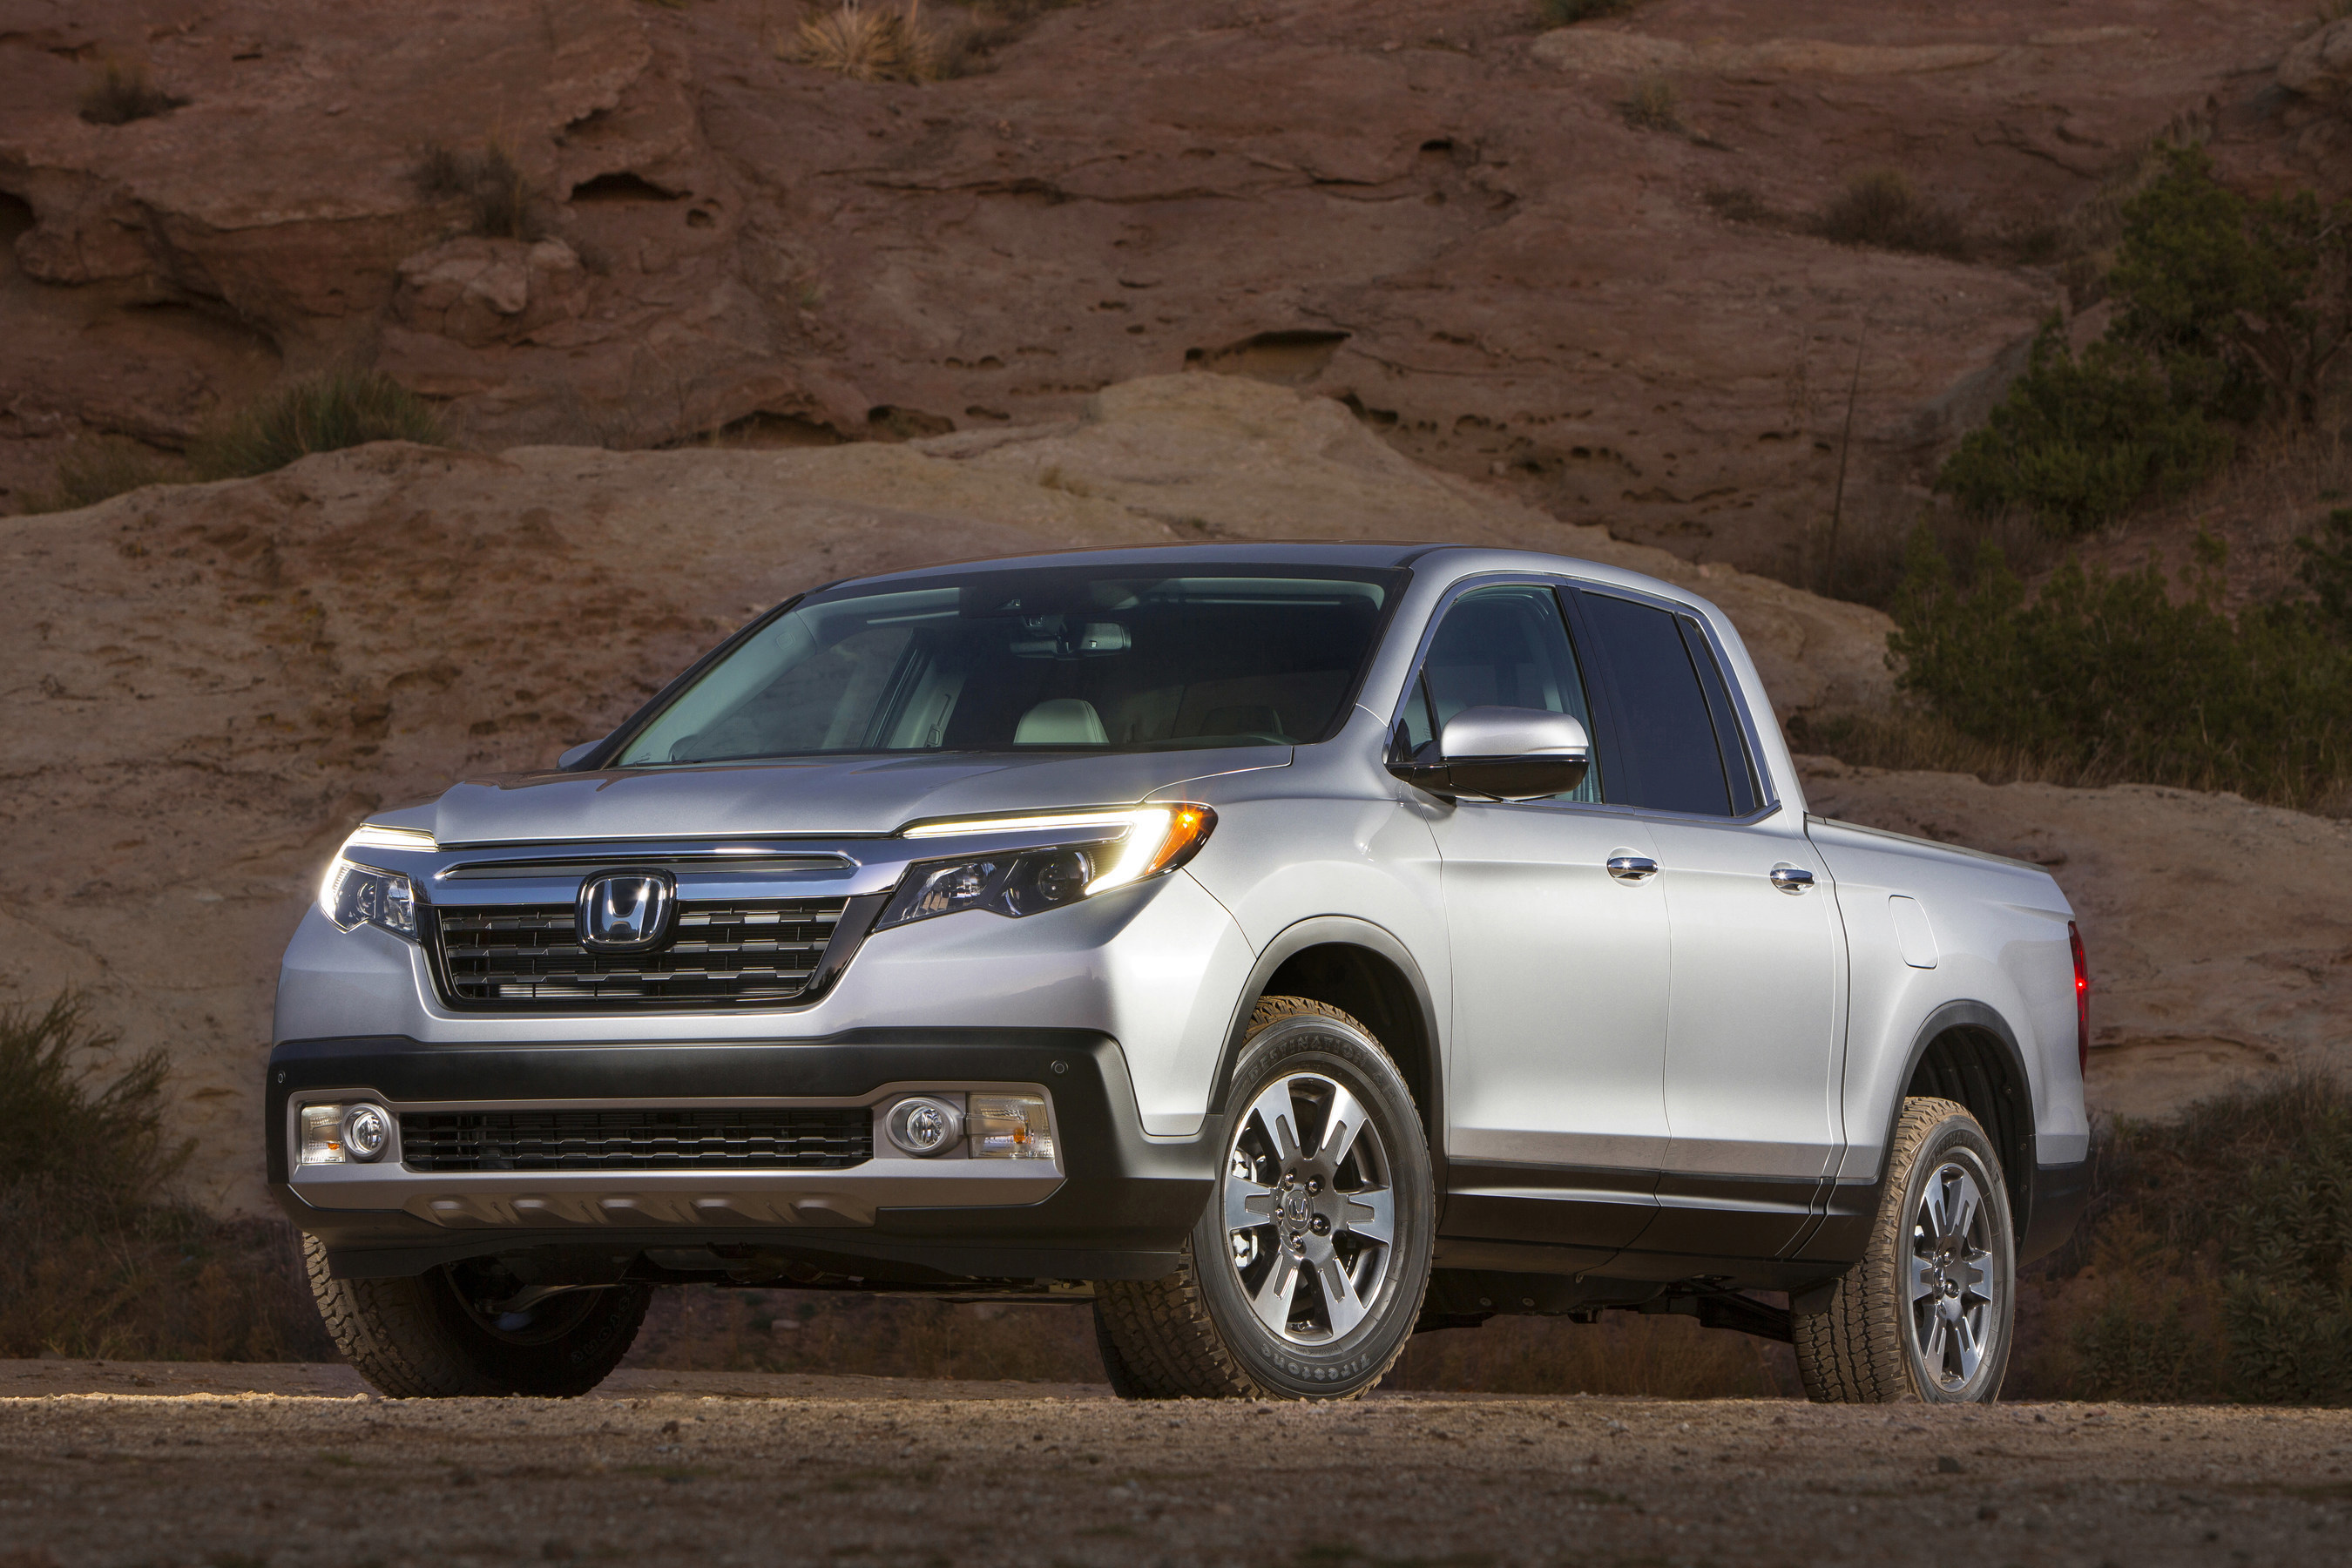 The 2017 Honda Ridgeline Made Its Debut On January 11 At 2016 North American Auto